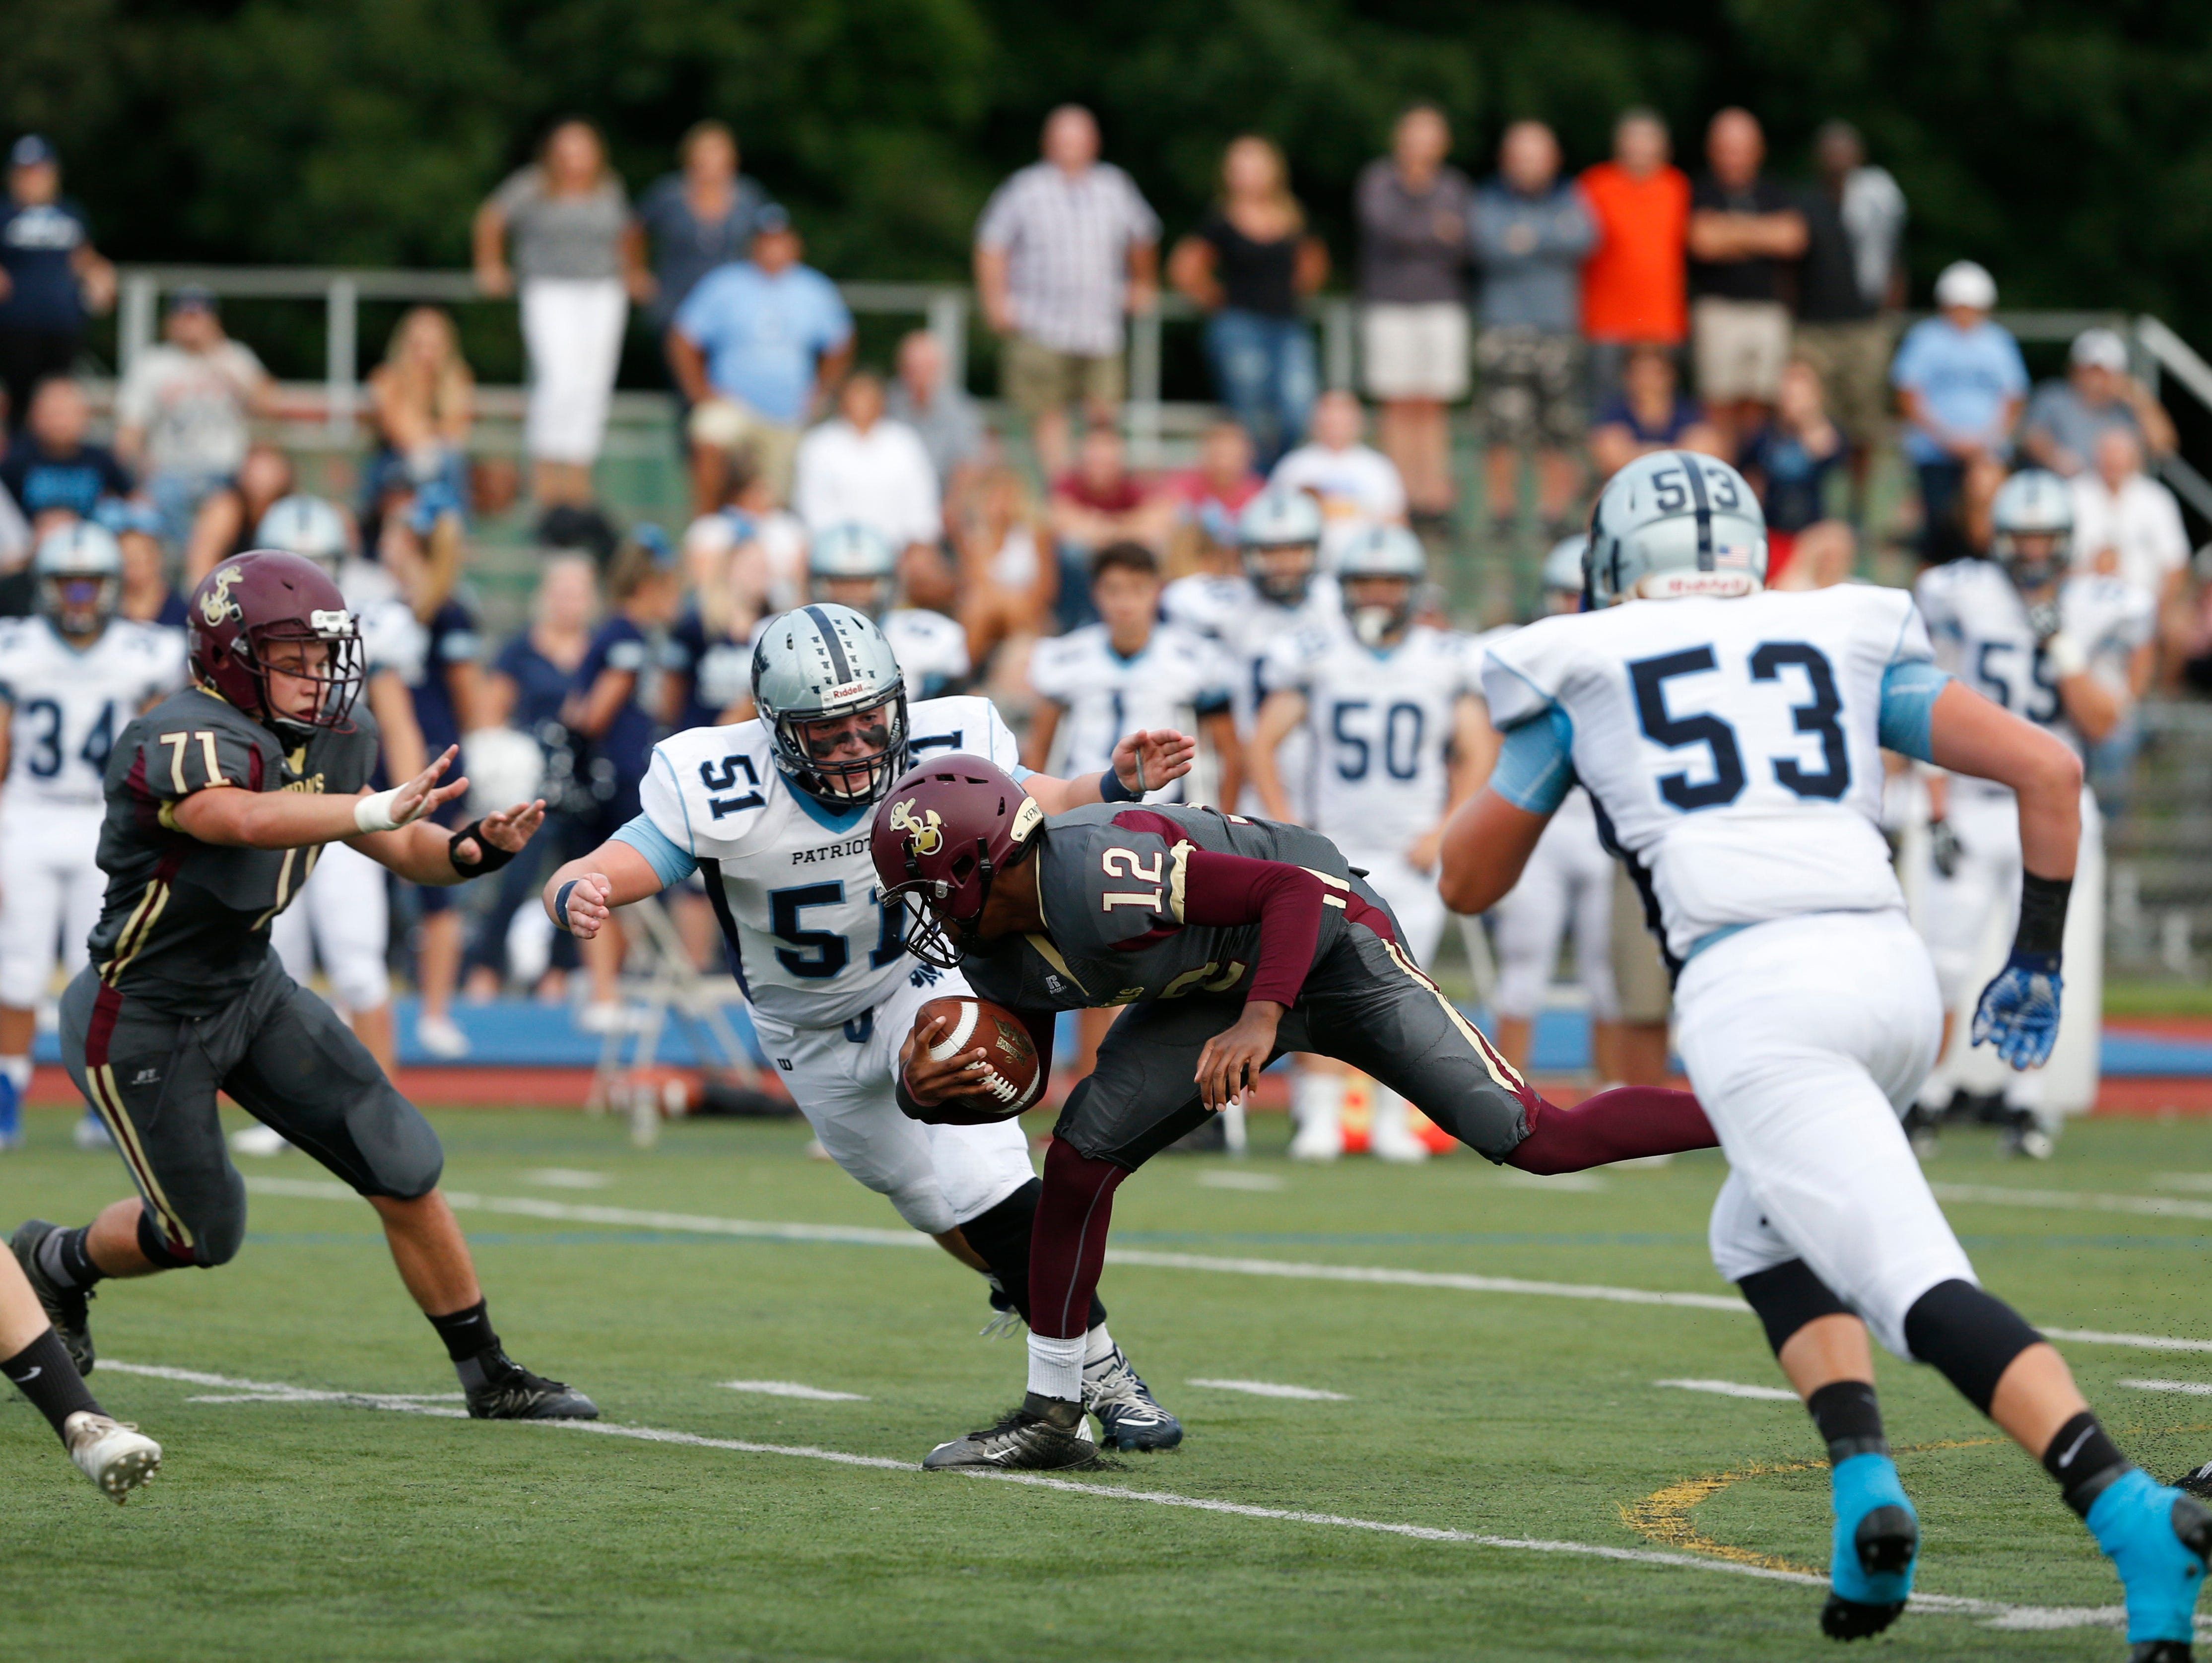 Action from Friday's game between Arlington and John Jay in Freedom Plains on Sept 14, 2018.